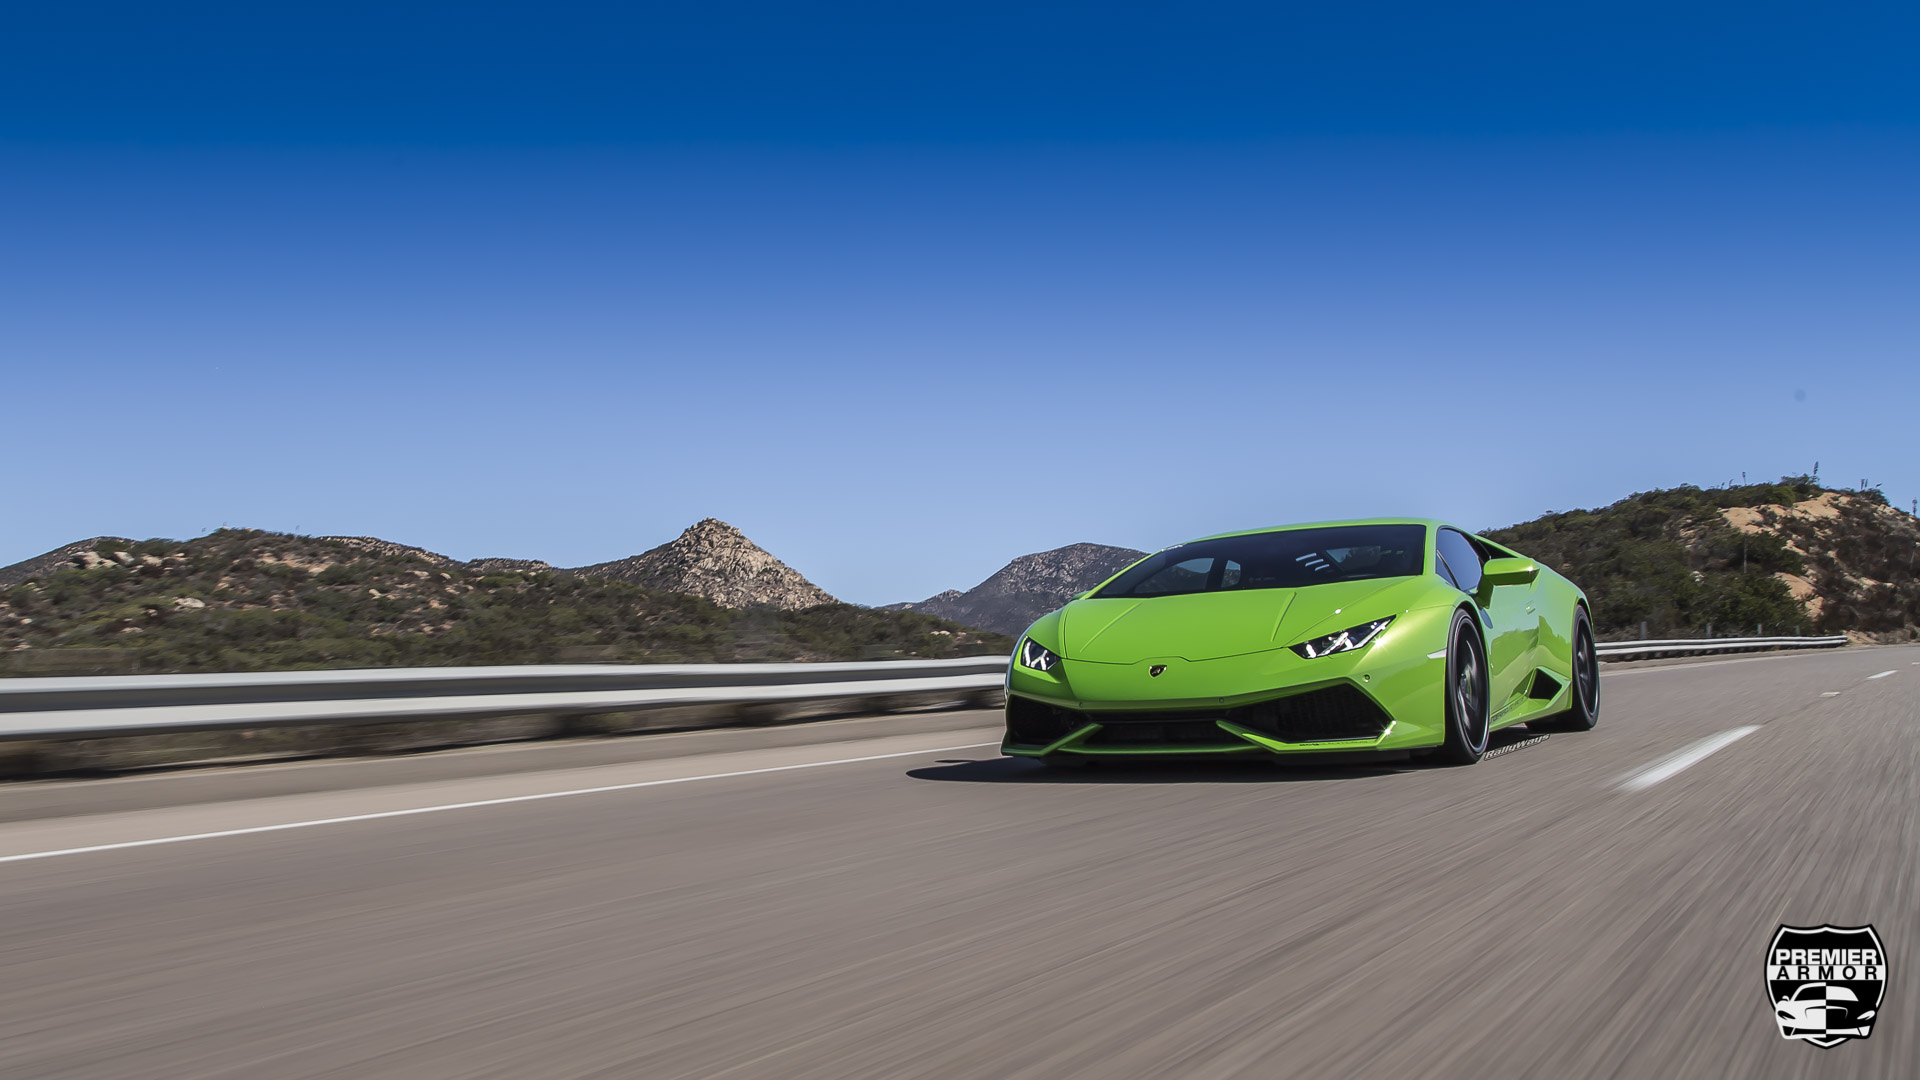 Lamborghini Huracan Window Tint Action Photo